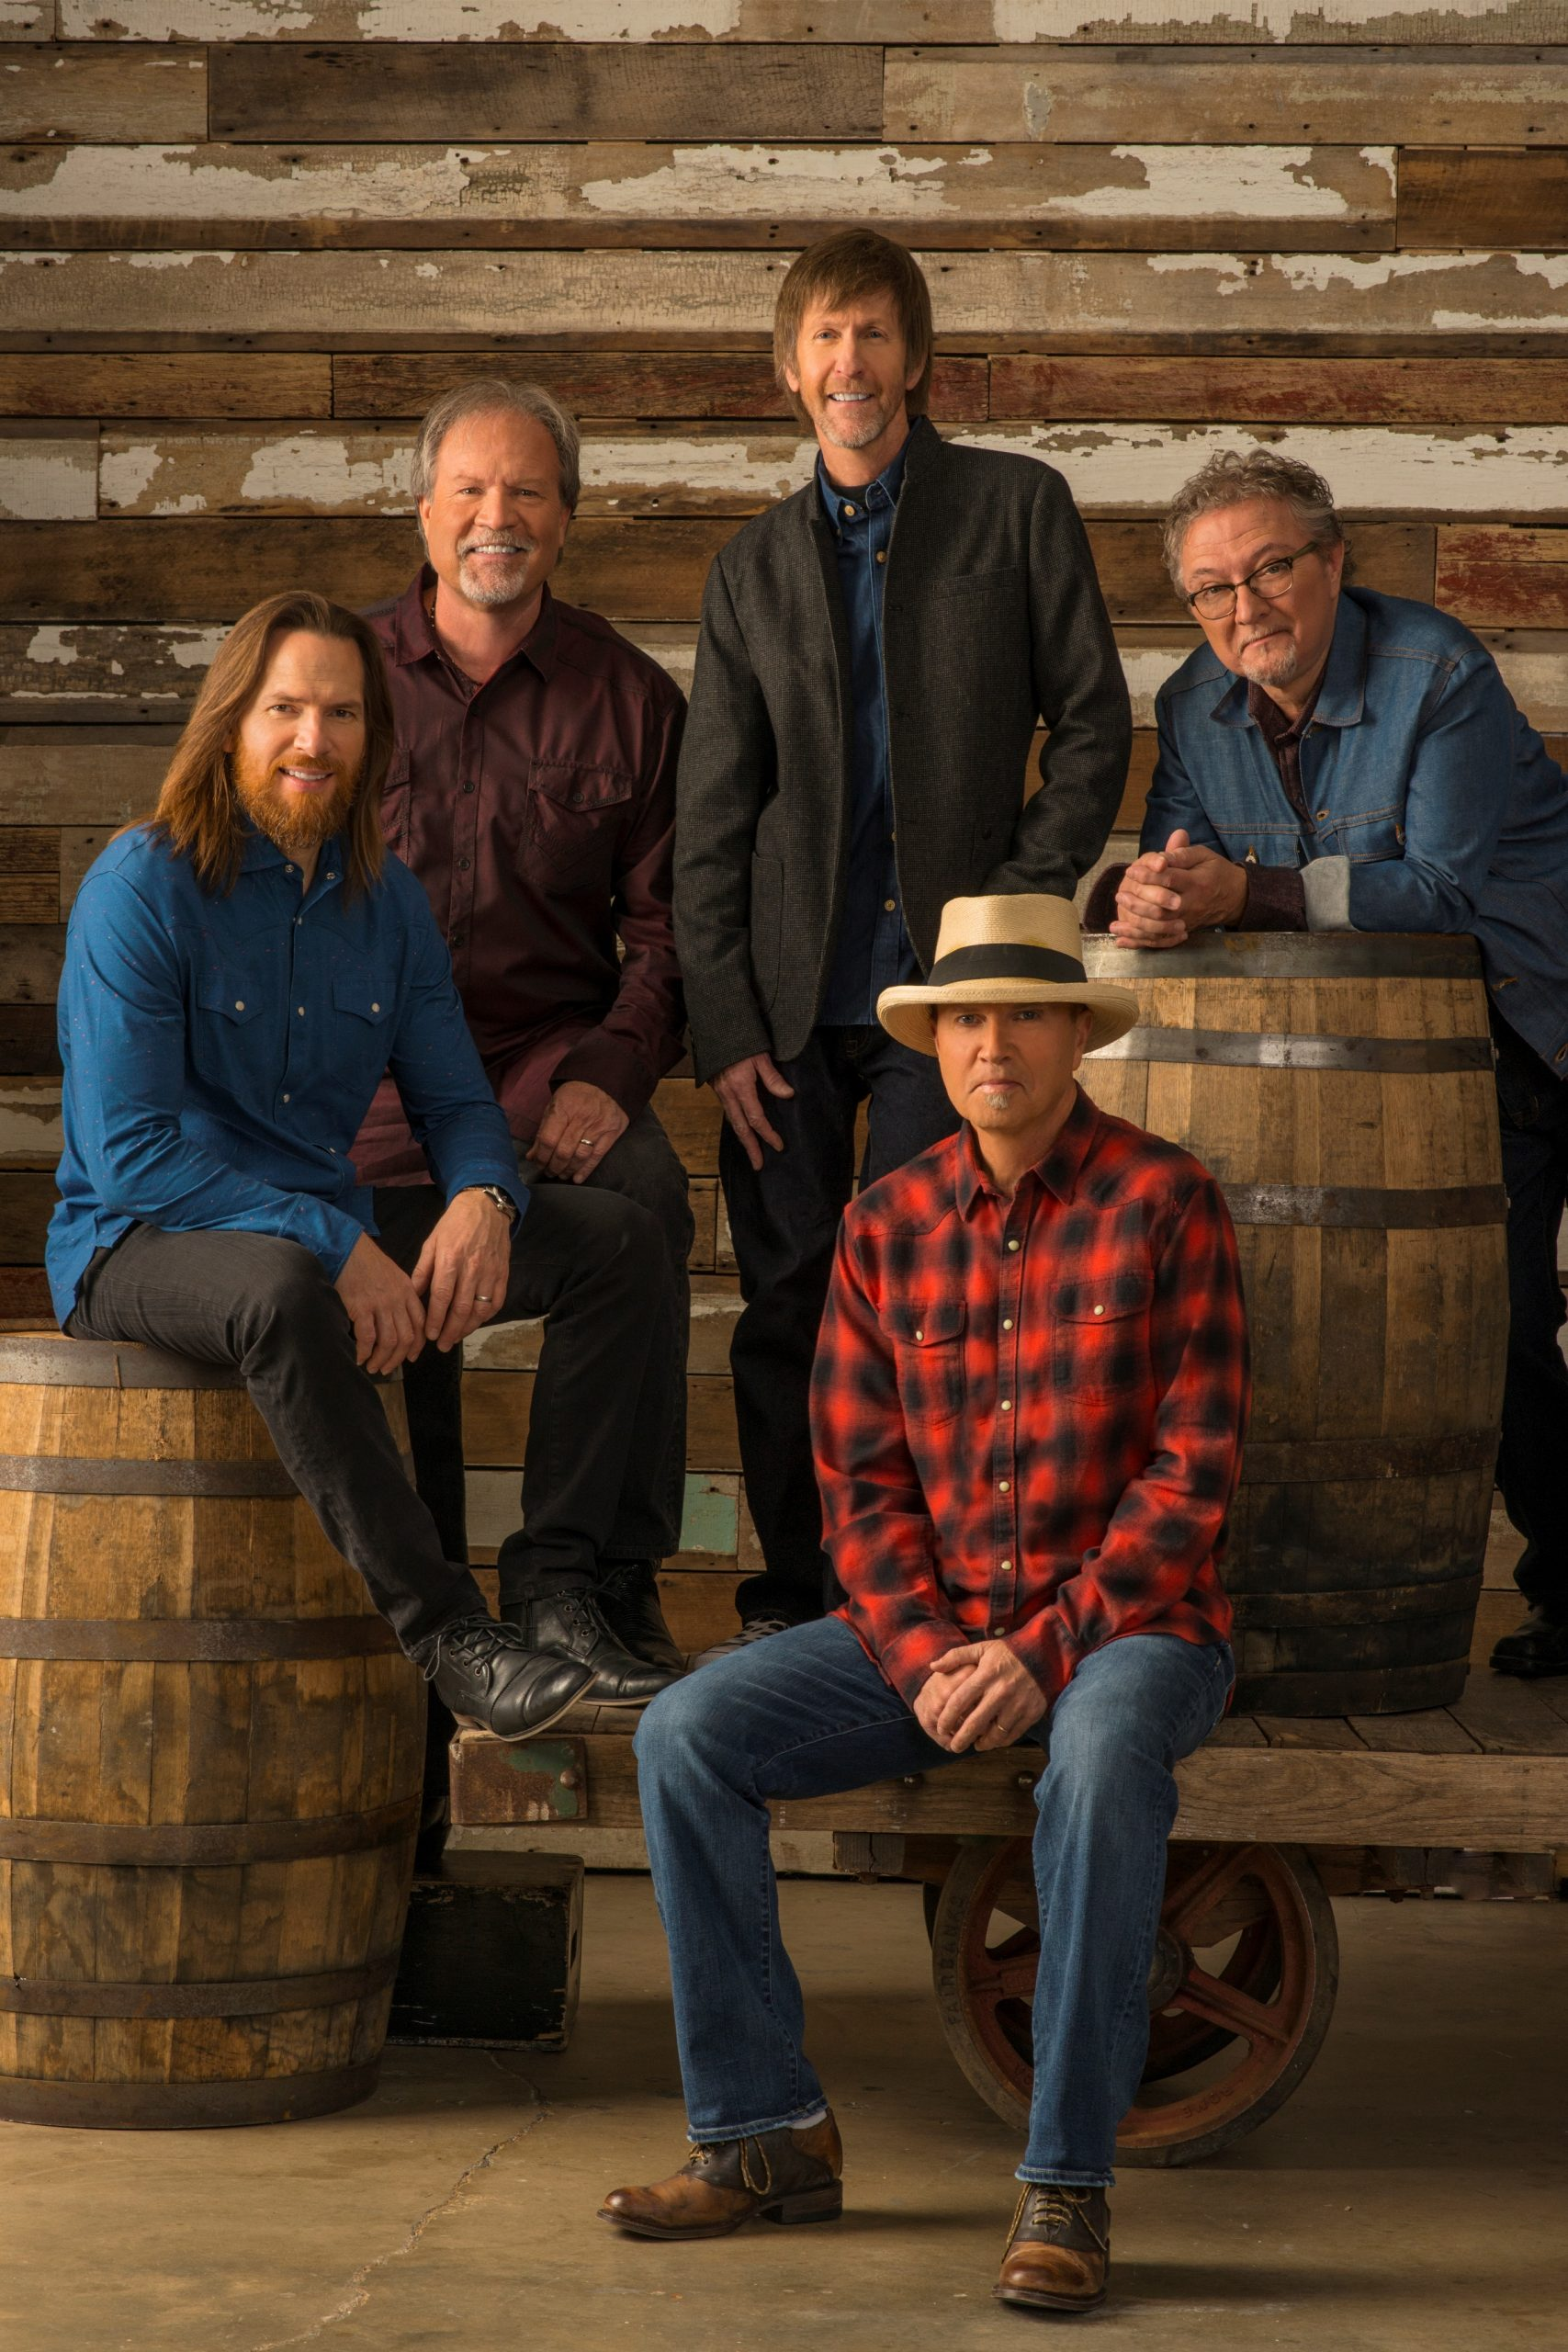 Sawer Brown band sitting with barrels